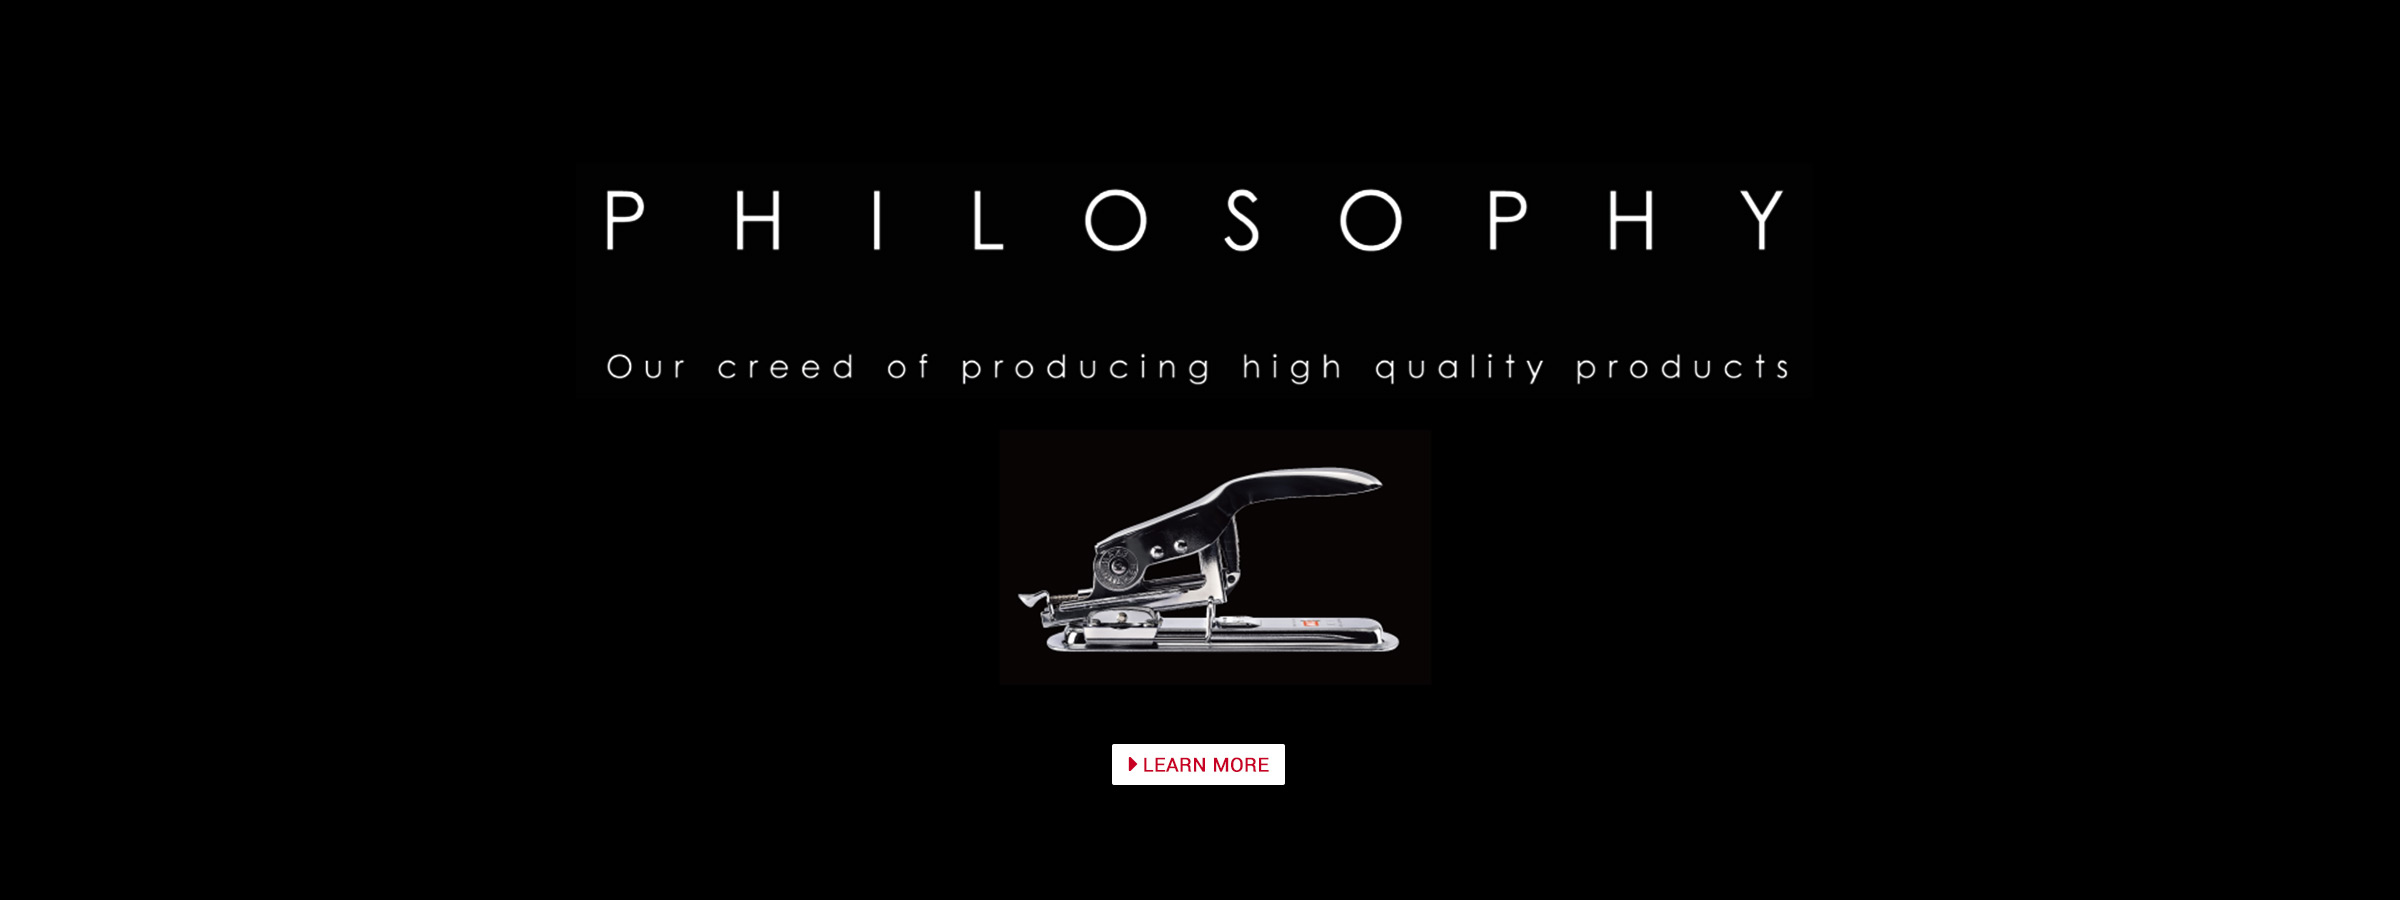 Philosophy Our creed of producing high quality products